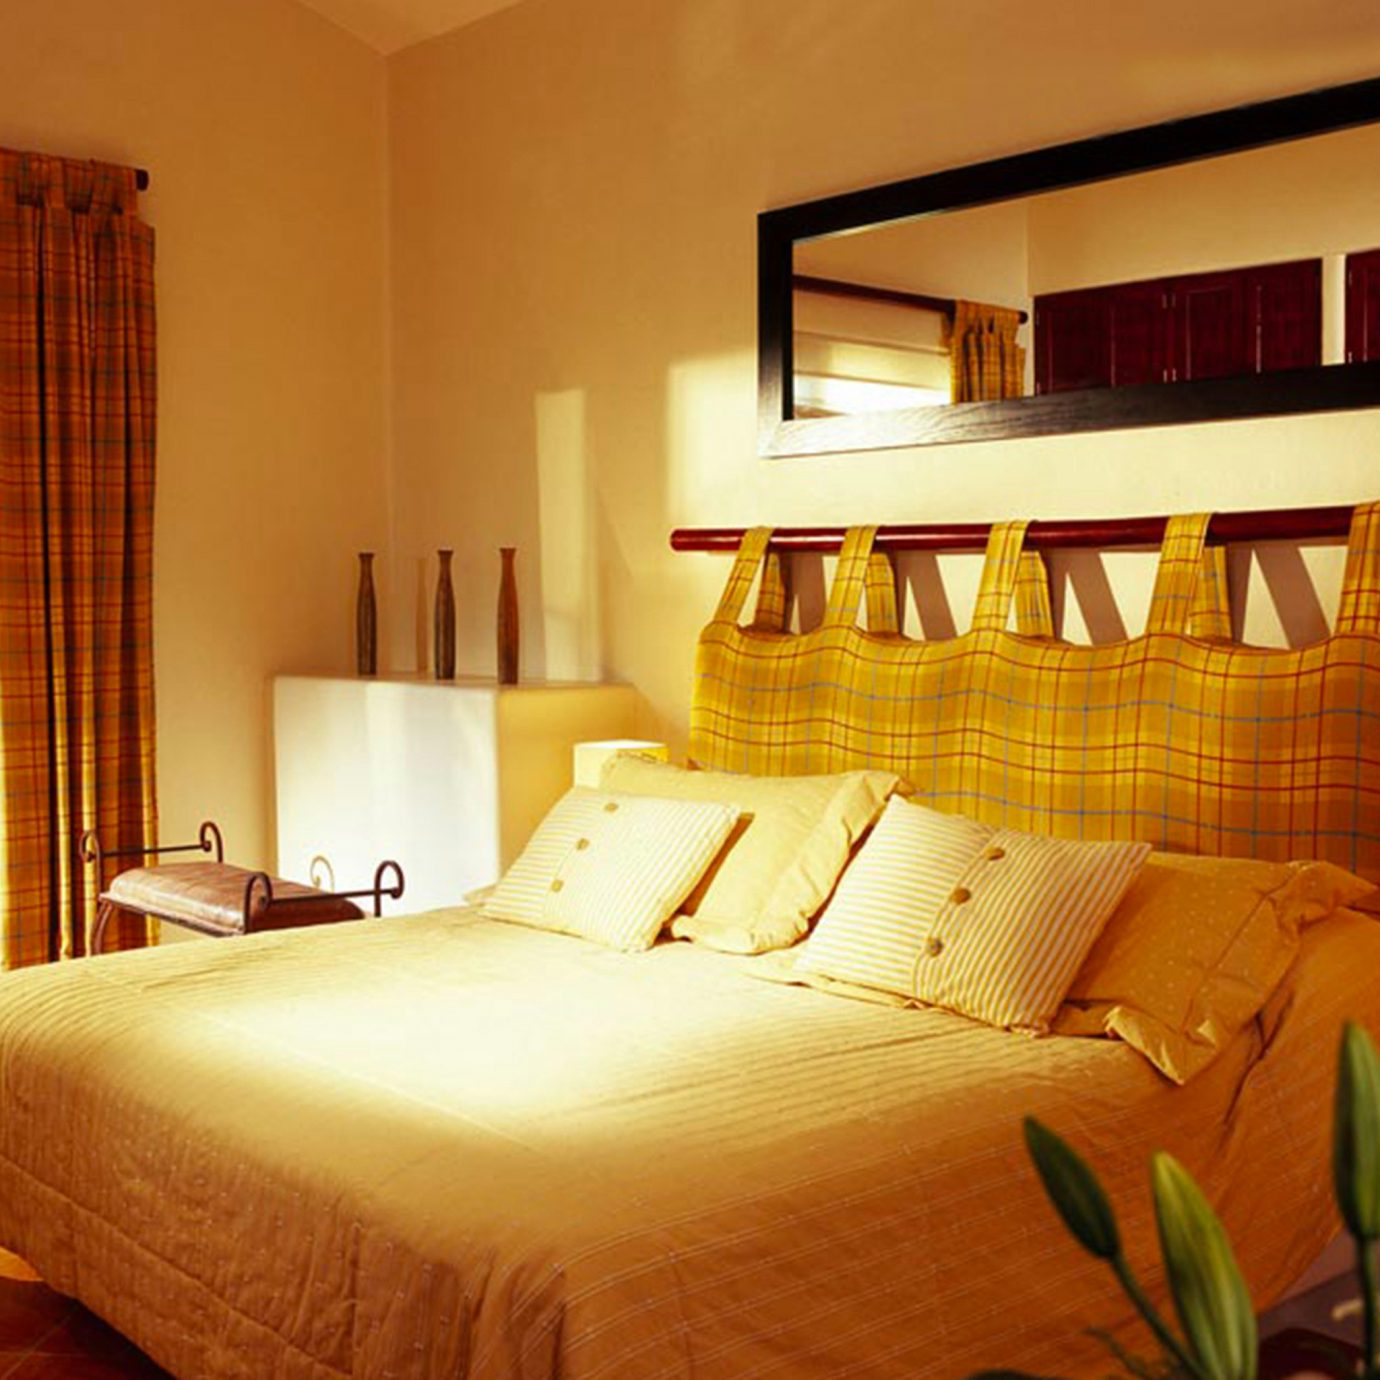 Balcony Beachfront Bedroom Resort Tropical Waterfront property Suite home cottage bed sheet living room lamp